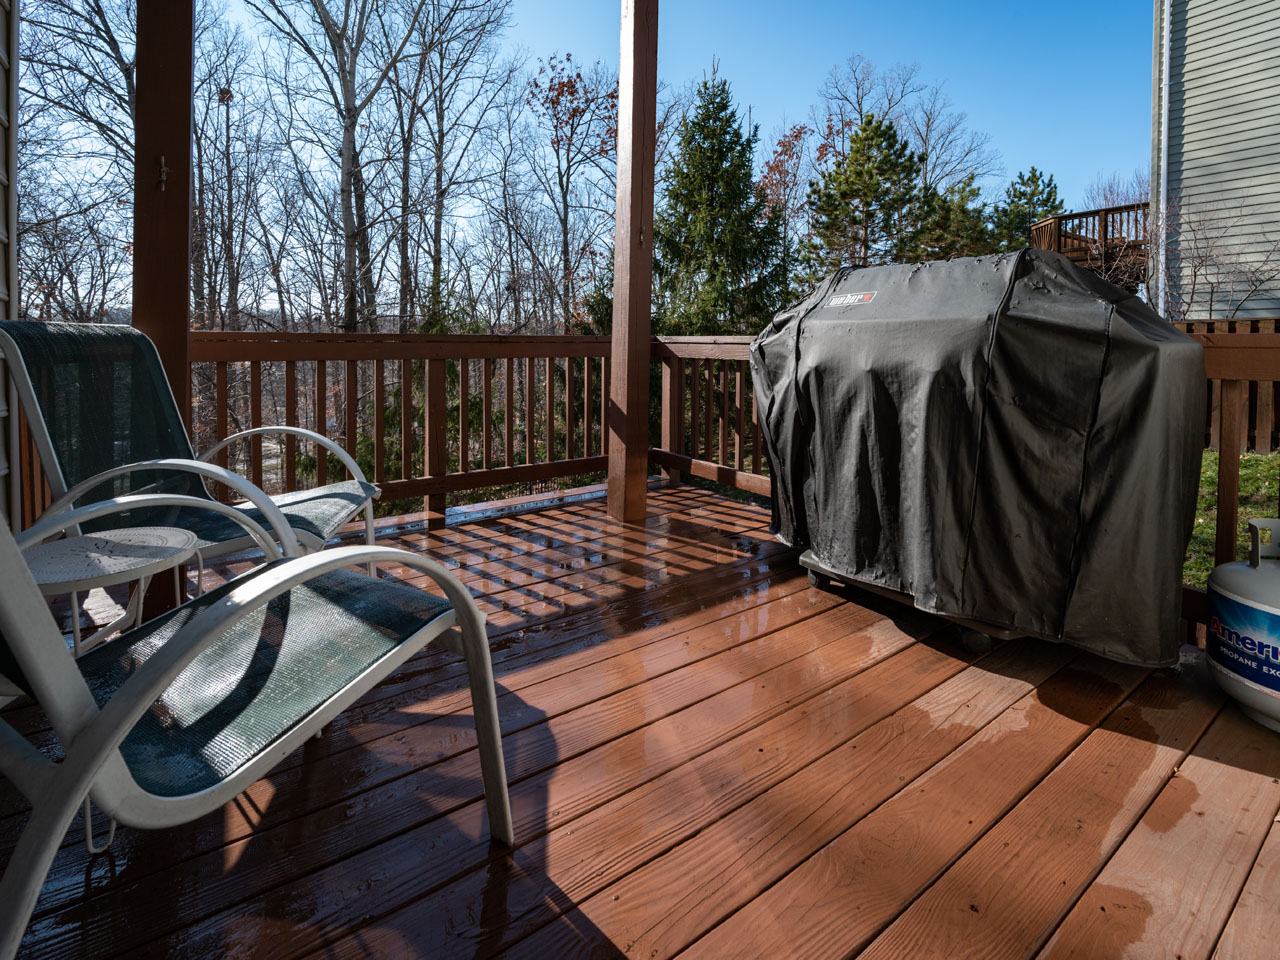 3722_deck-kitchen-1  |   | Alexandria Delaware Real Estate For Sale | MLS# Vafx1104336  - Best of Northern Virginia